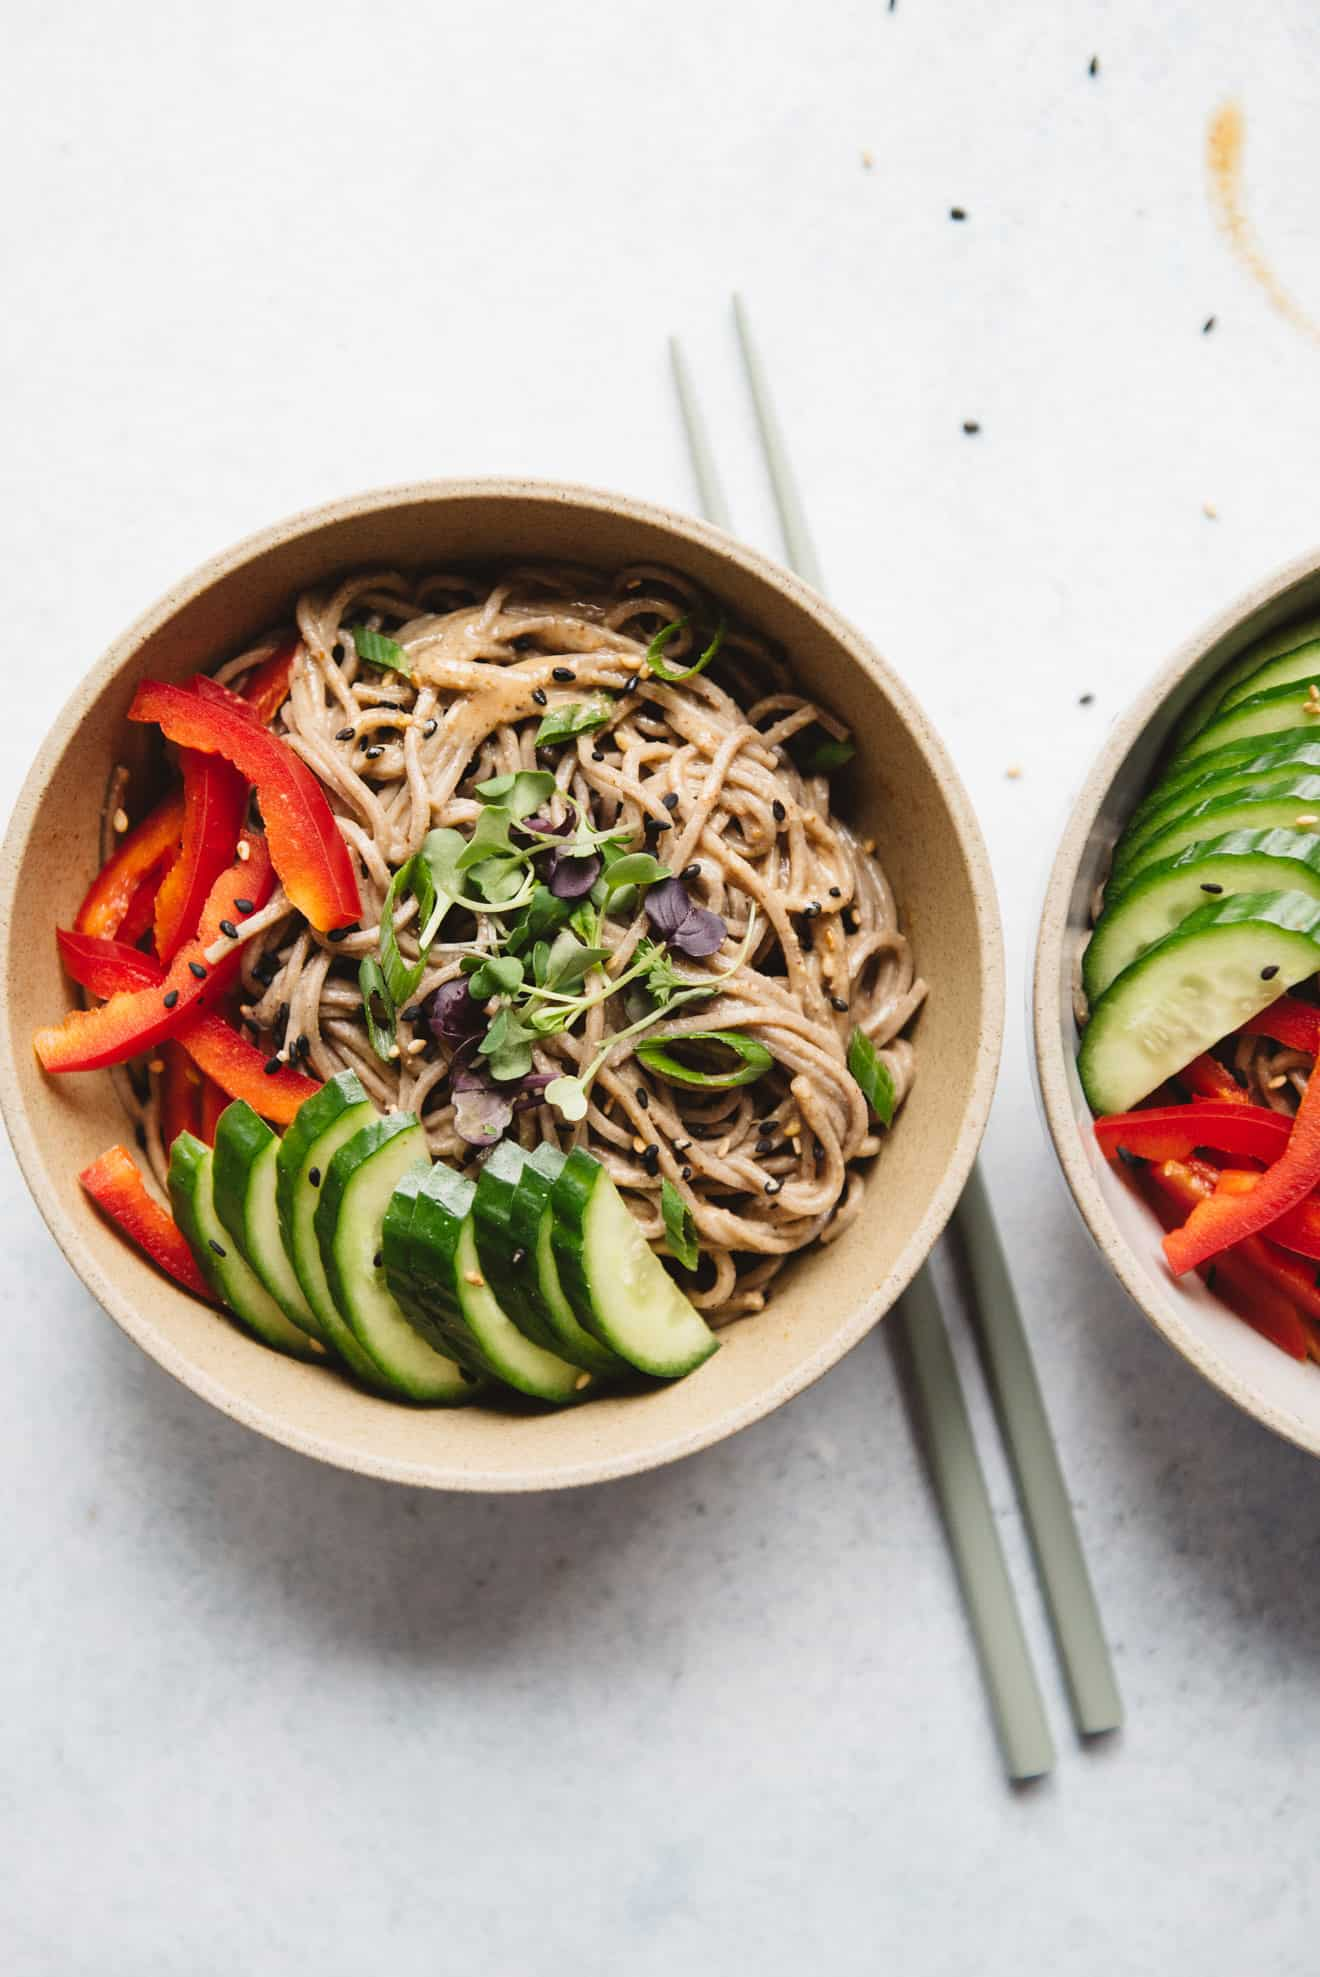 Cold Soba Noodles with Almond Butter Sauce (Vegan)